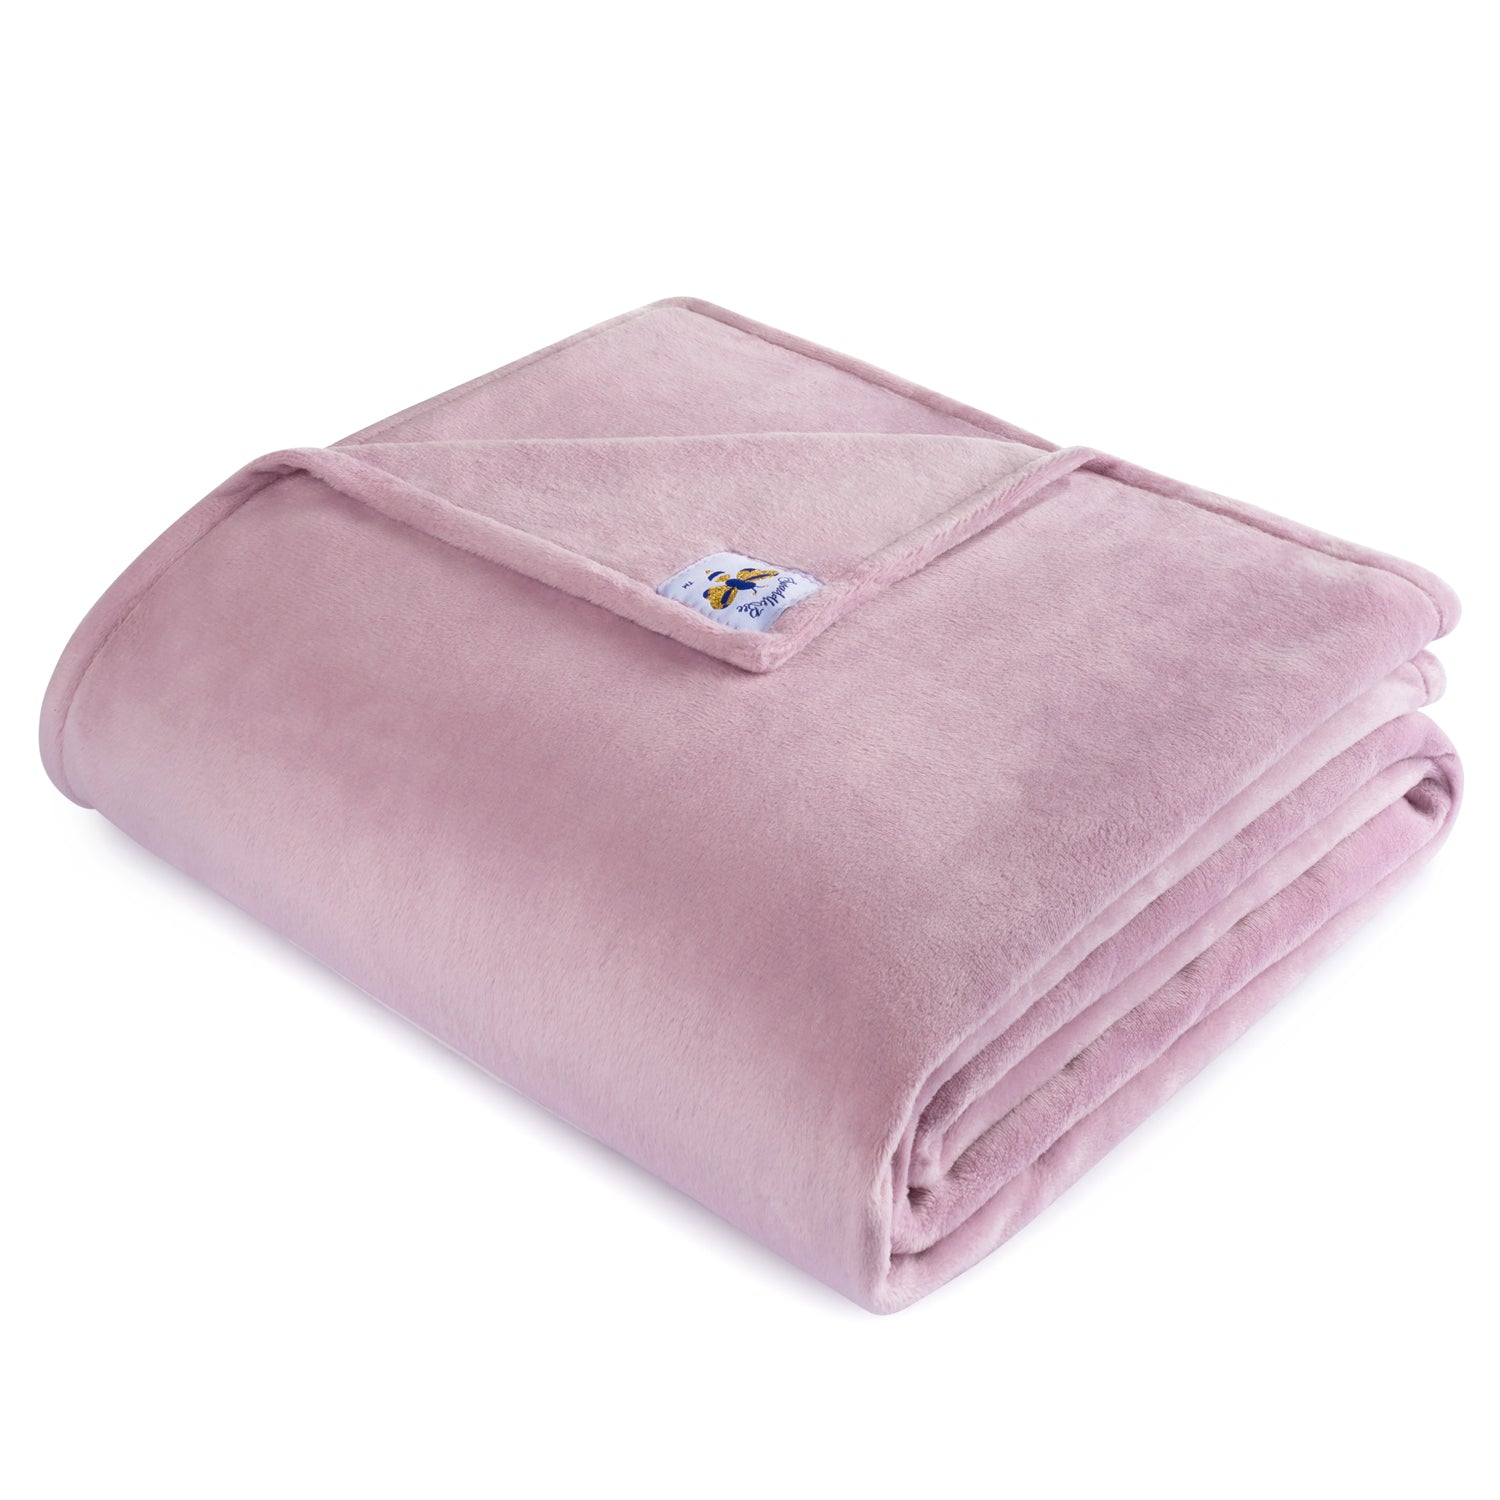 PRE ORDER BiggerBee Minky Throw Blanket Dusty Lavender (ARRIVES IN 1.5 WEEKS APPROX)